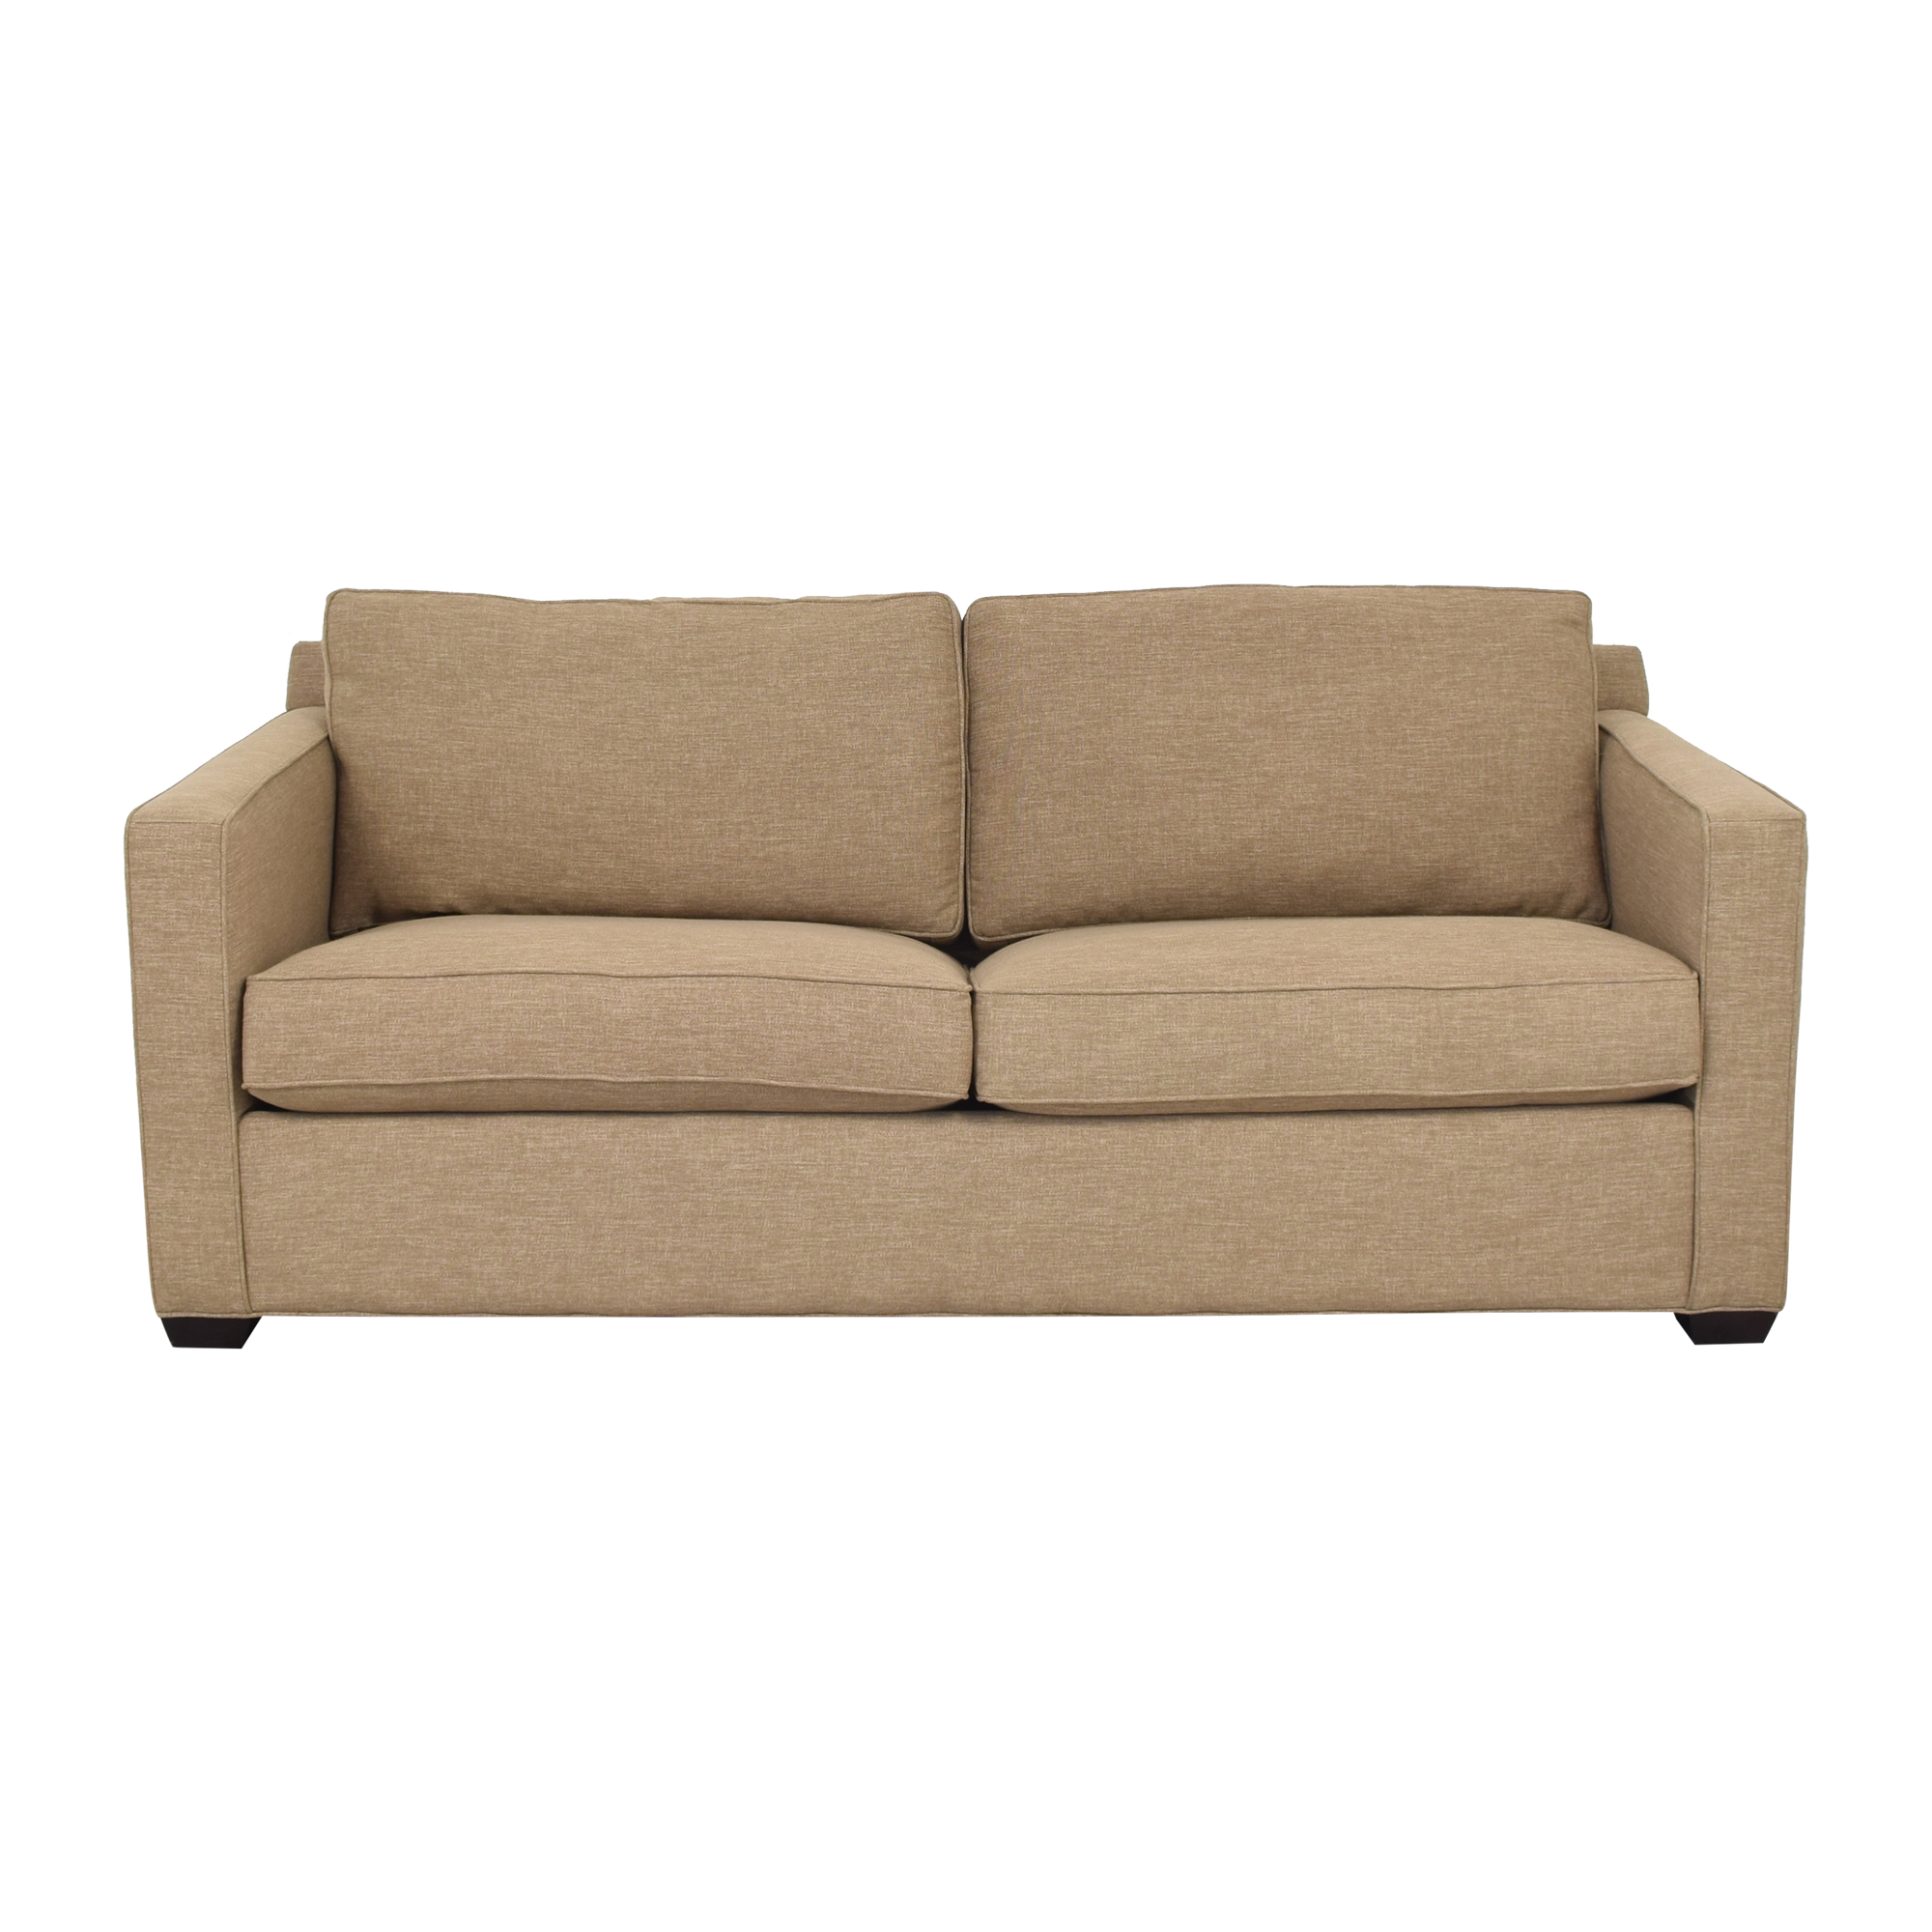 Crate & Barrel Crate & Barrel Davis Full Sleeper Sofa pa